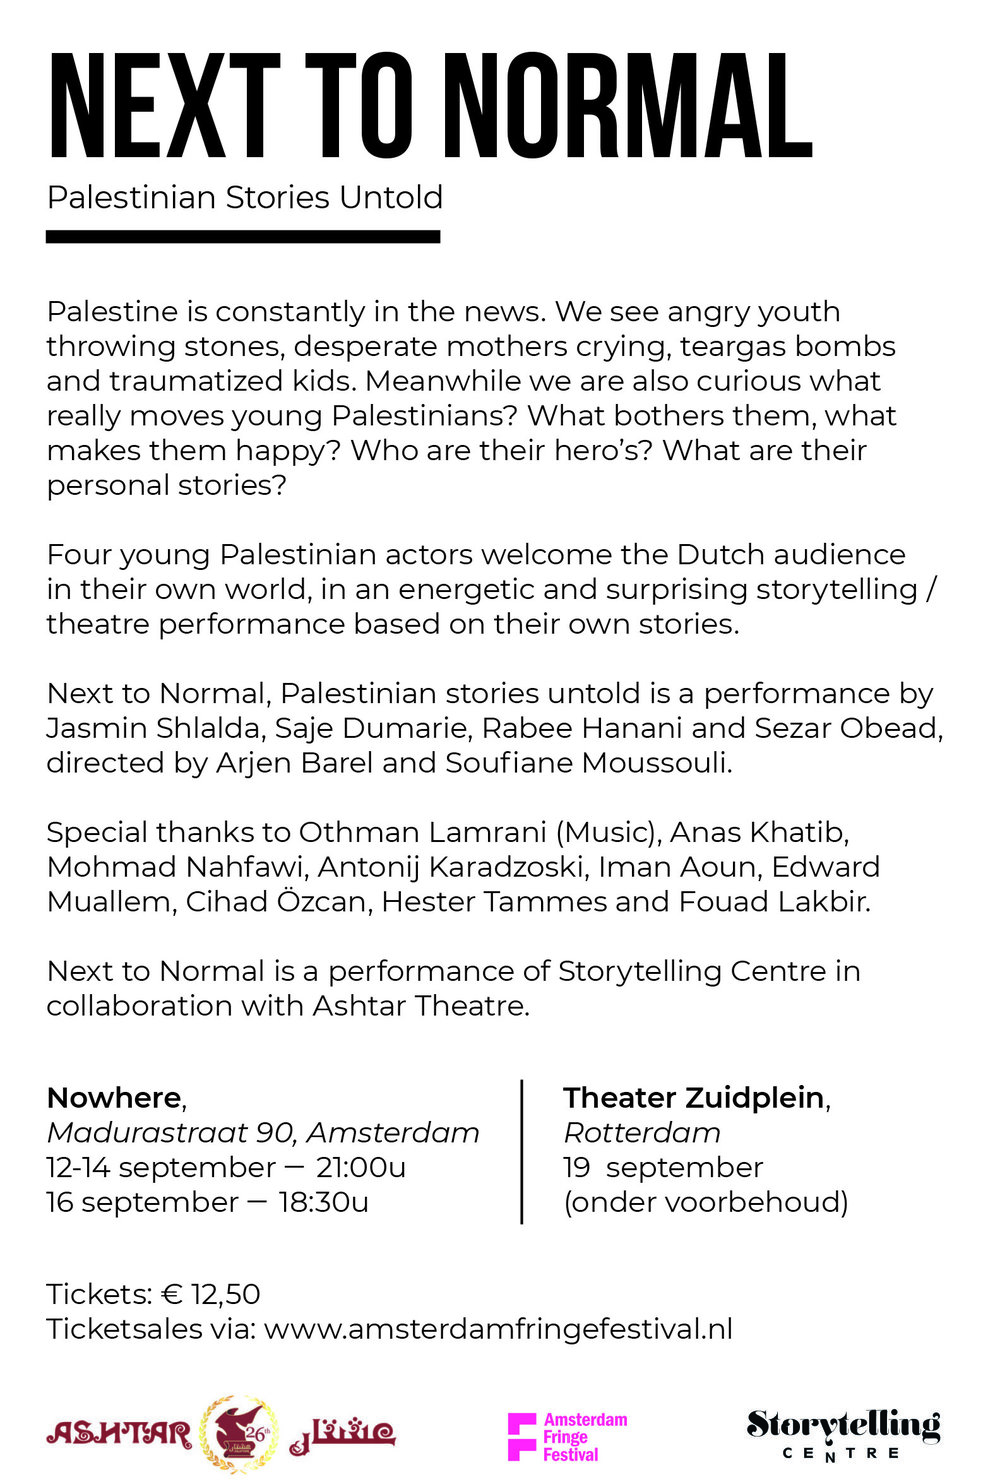 Next to Normal_Palestinian Stories Untold_eflyer_achterkant.jpg